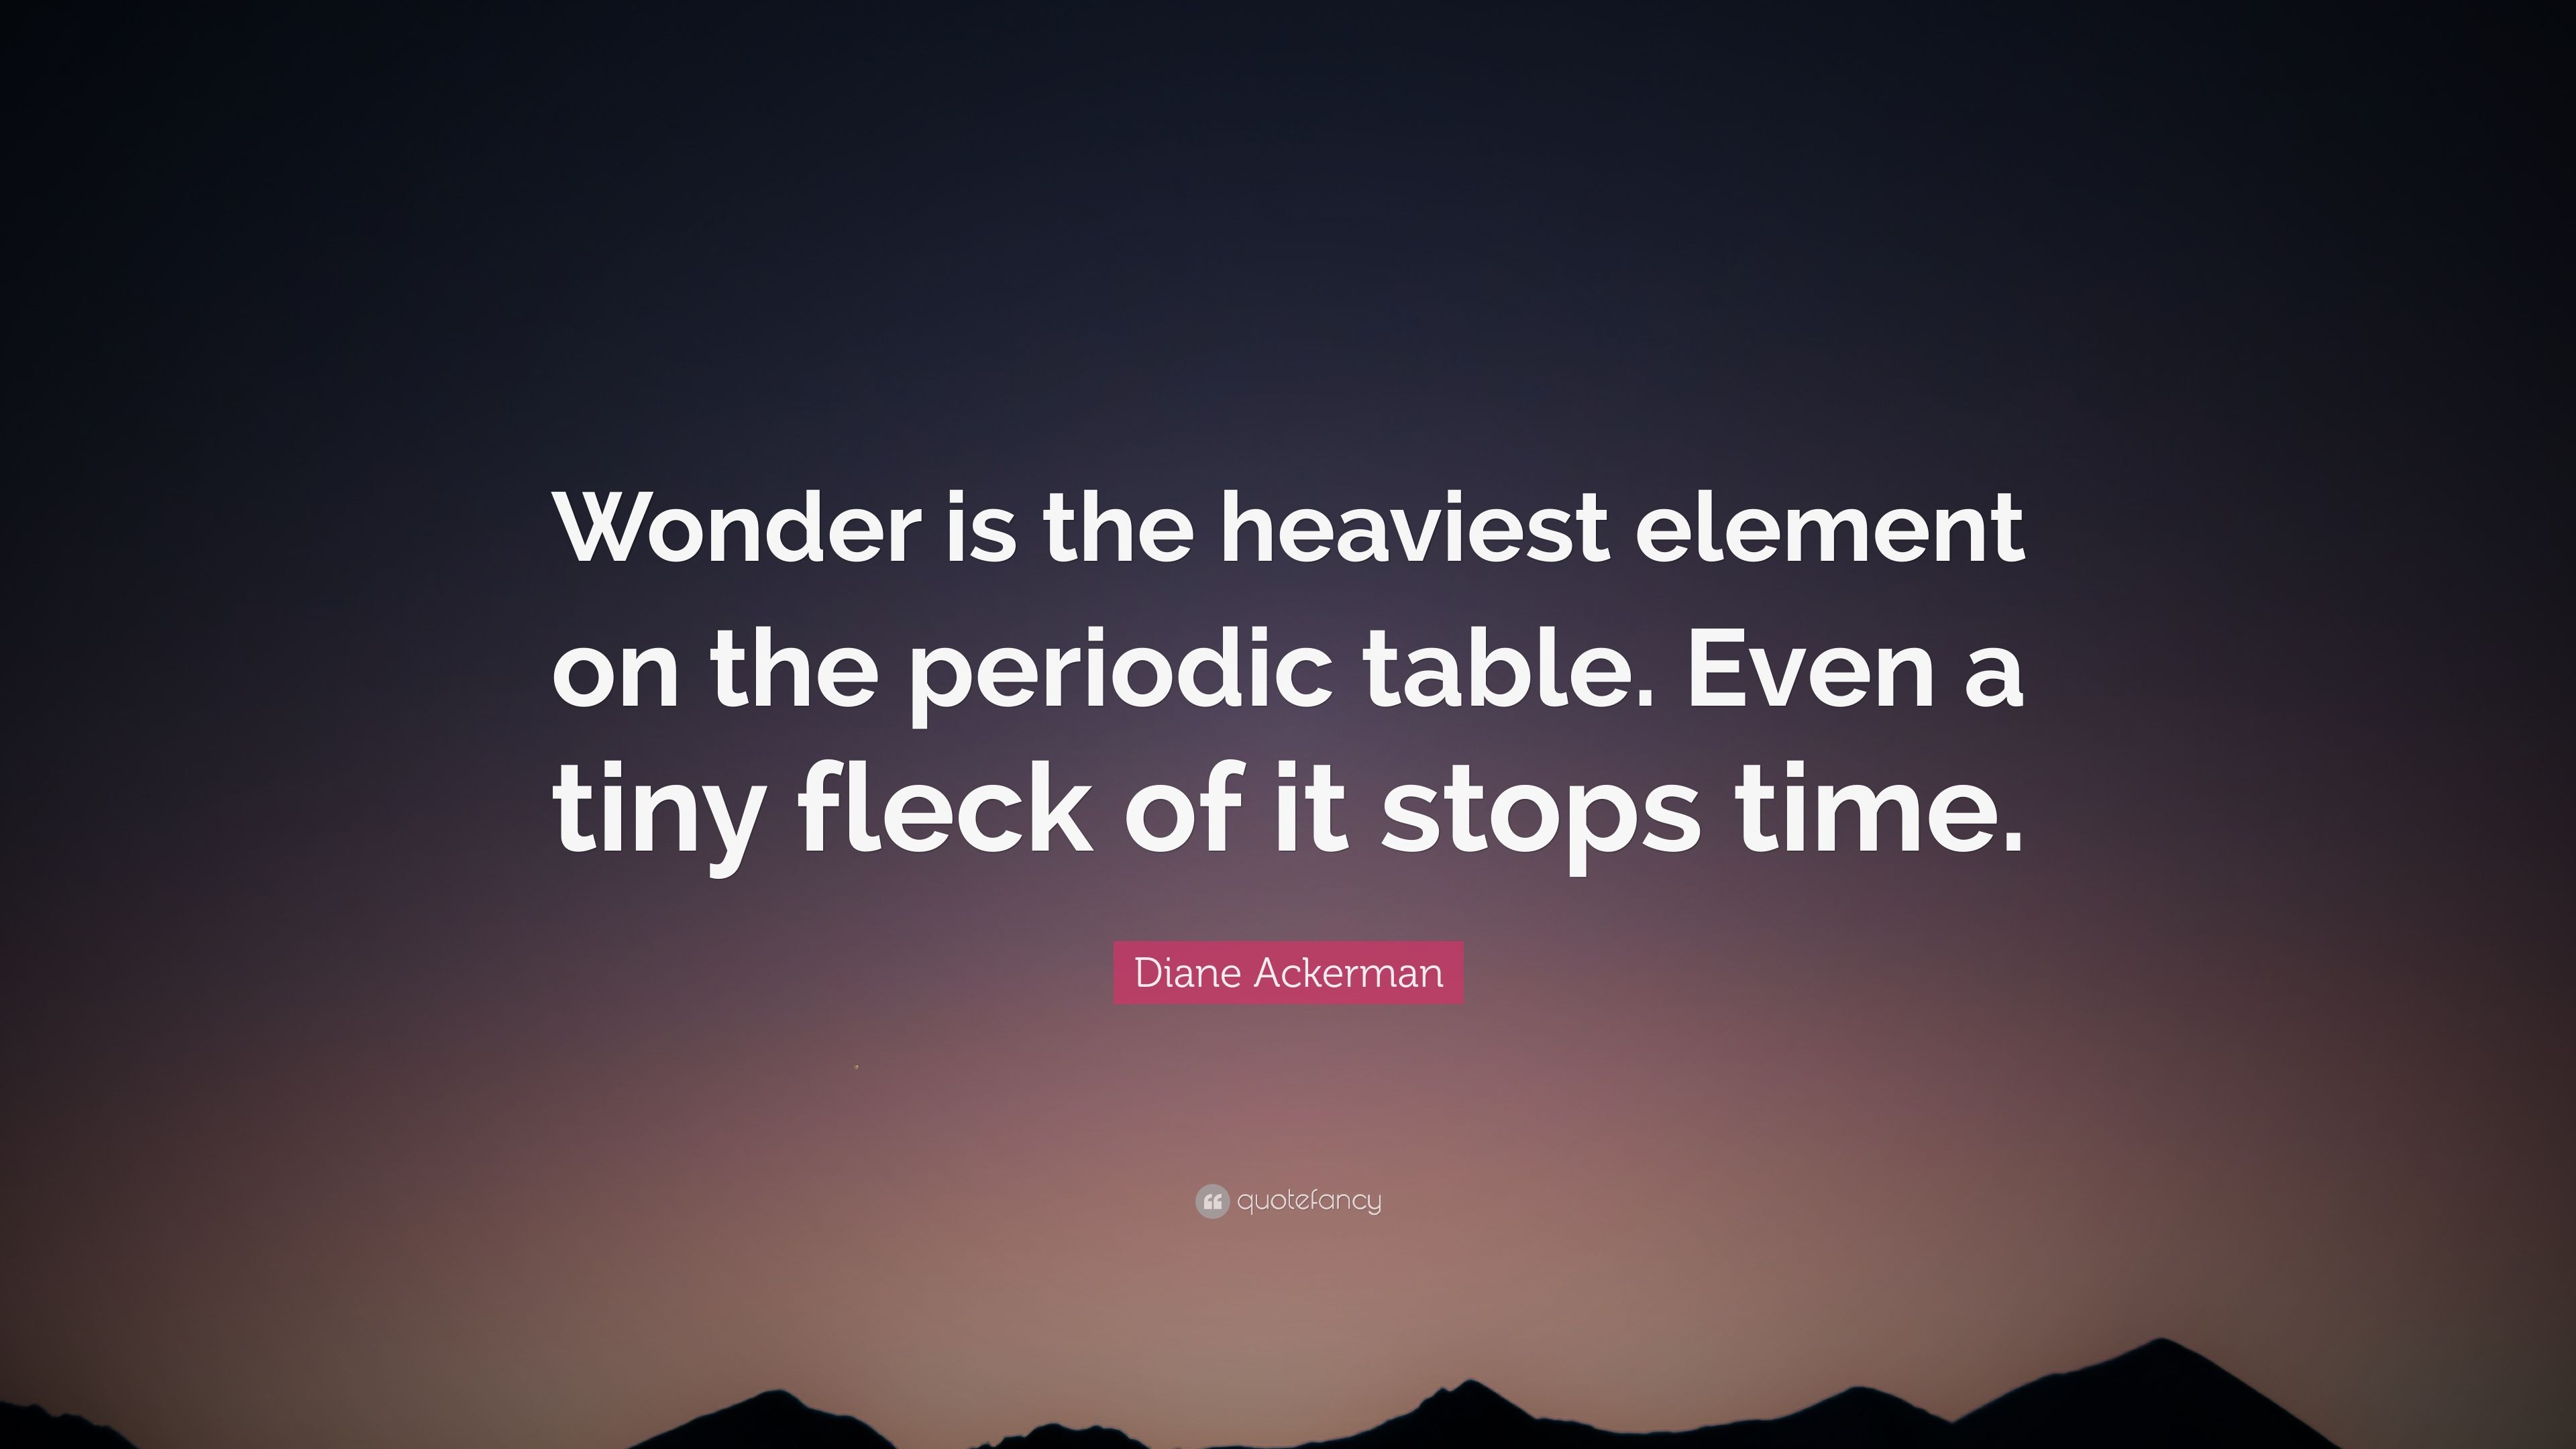 Heaviest element on the periodic table image collections diane ackerman quote wonder is the heaviest element on the diane ackerman quote wonder is the gamestrikefo Images